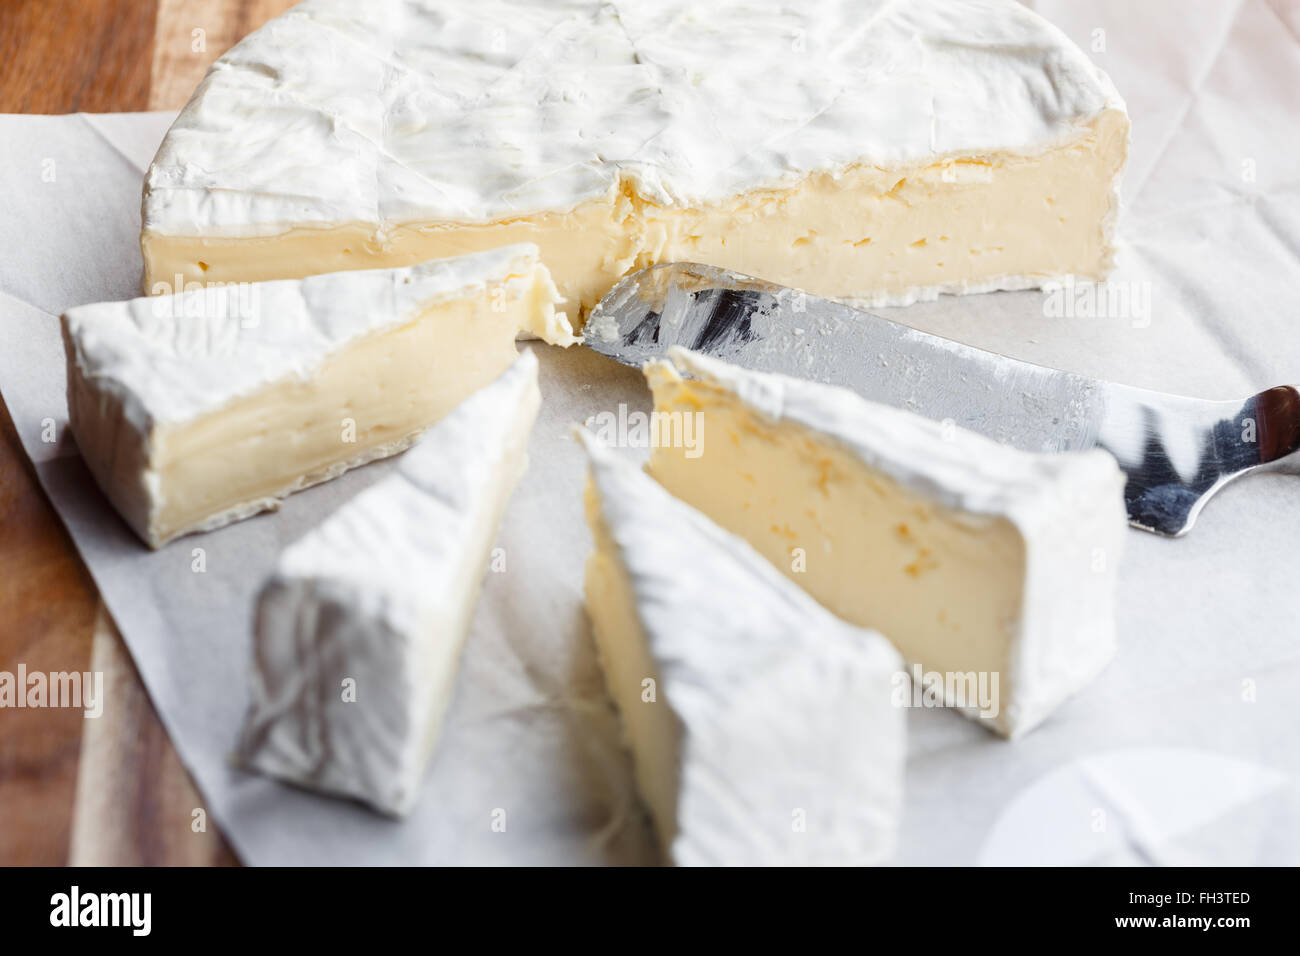 Fresh Brie cheese and slices - Stock Image